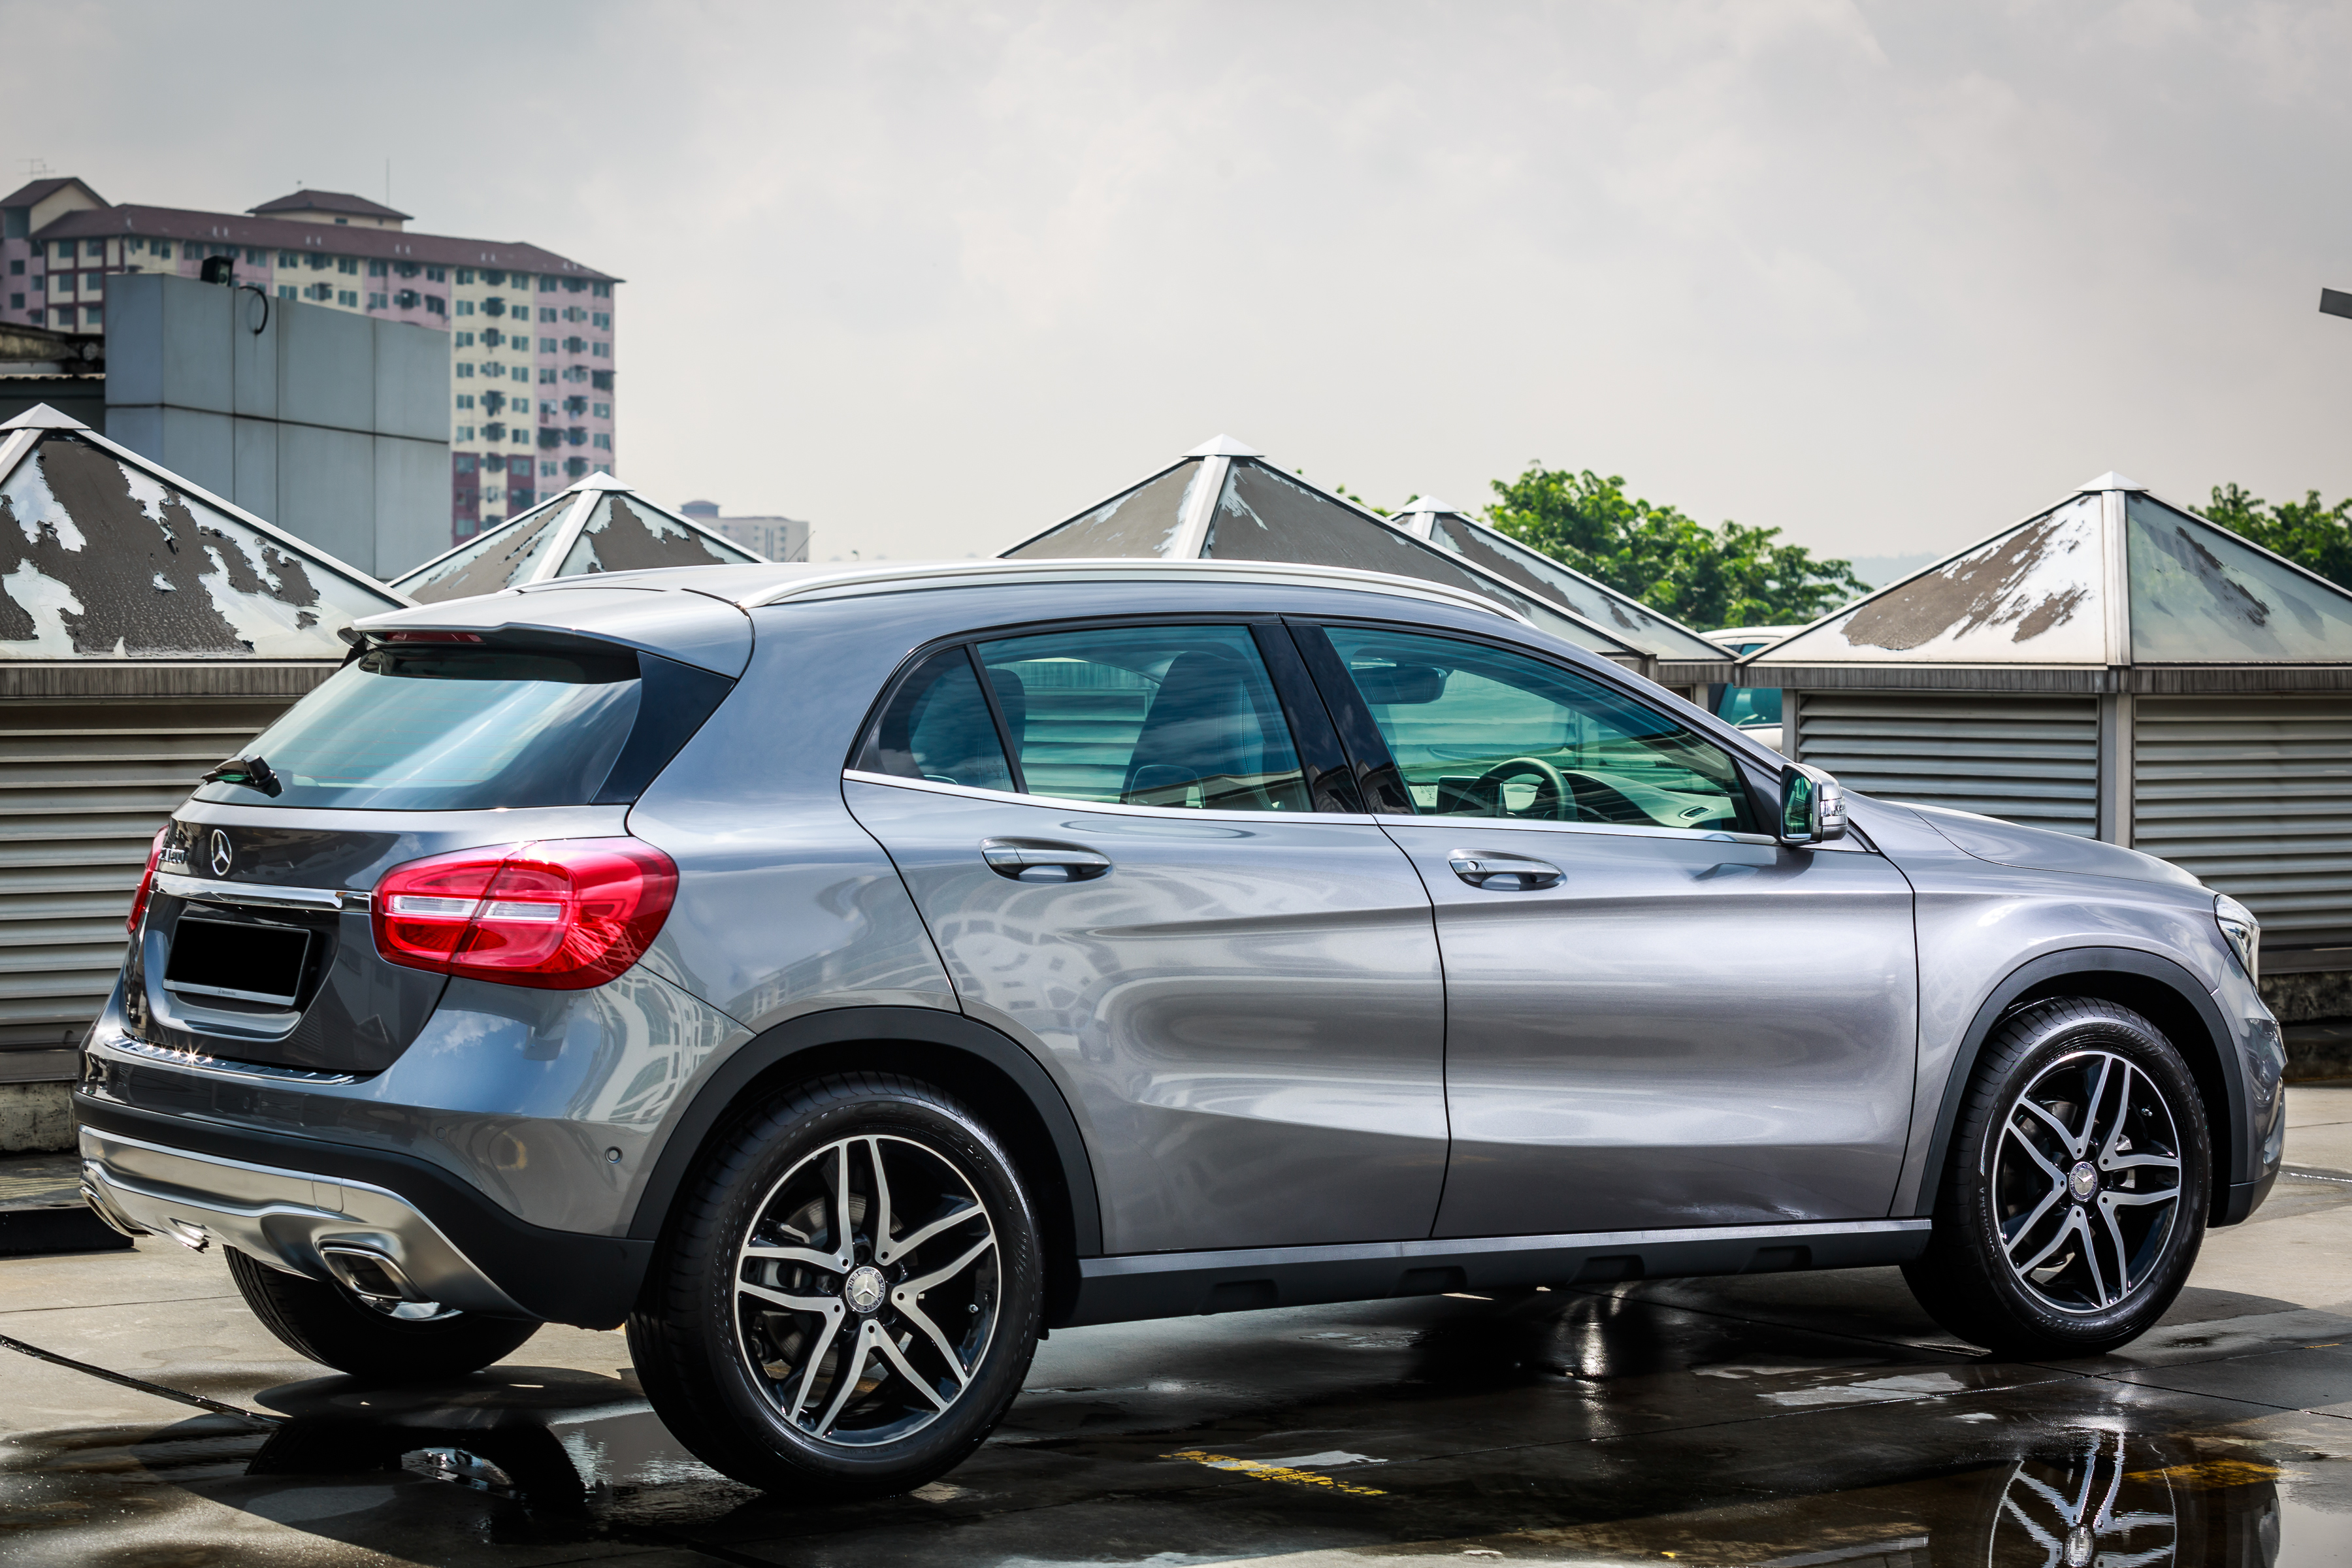 mercedes benz gla class suv launched in malaysia gla 200 gla 250 and gla 45 amg from rm239k. Black Bedroom Furniture Sets. Home Design Ideas